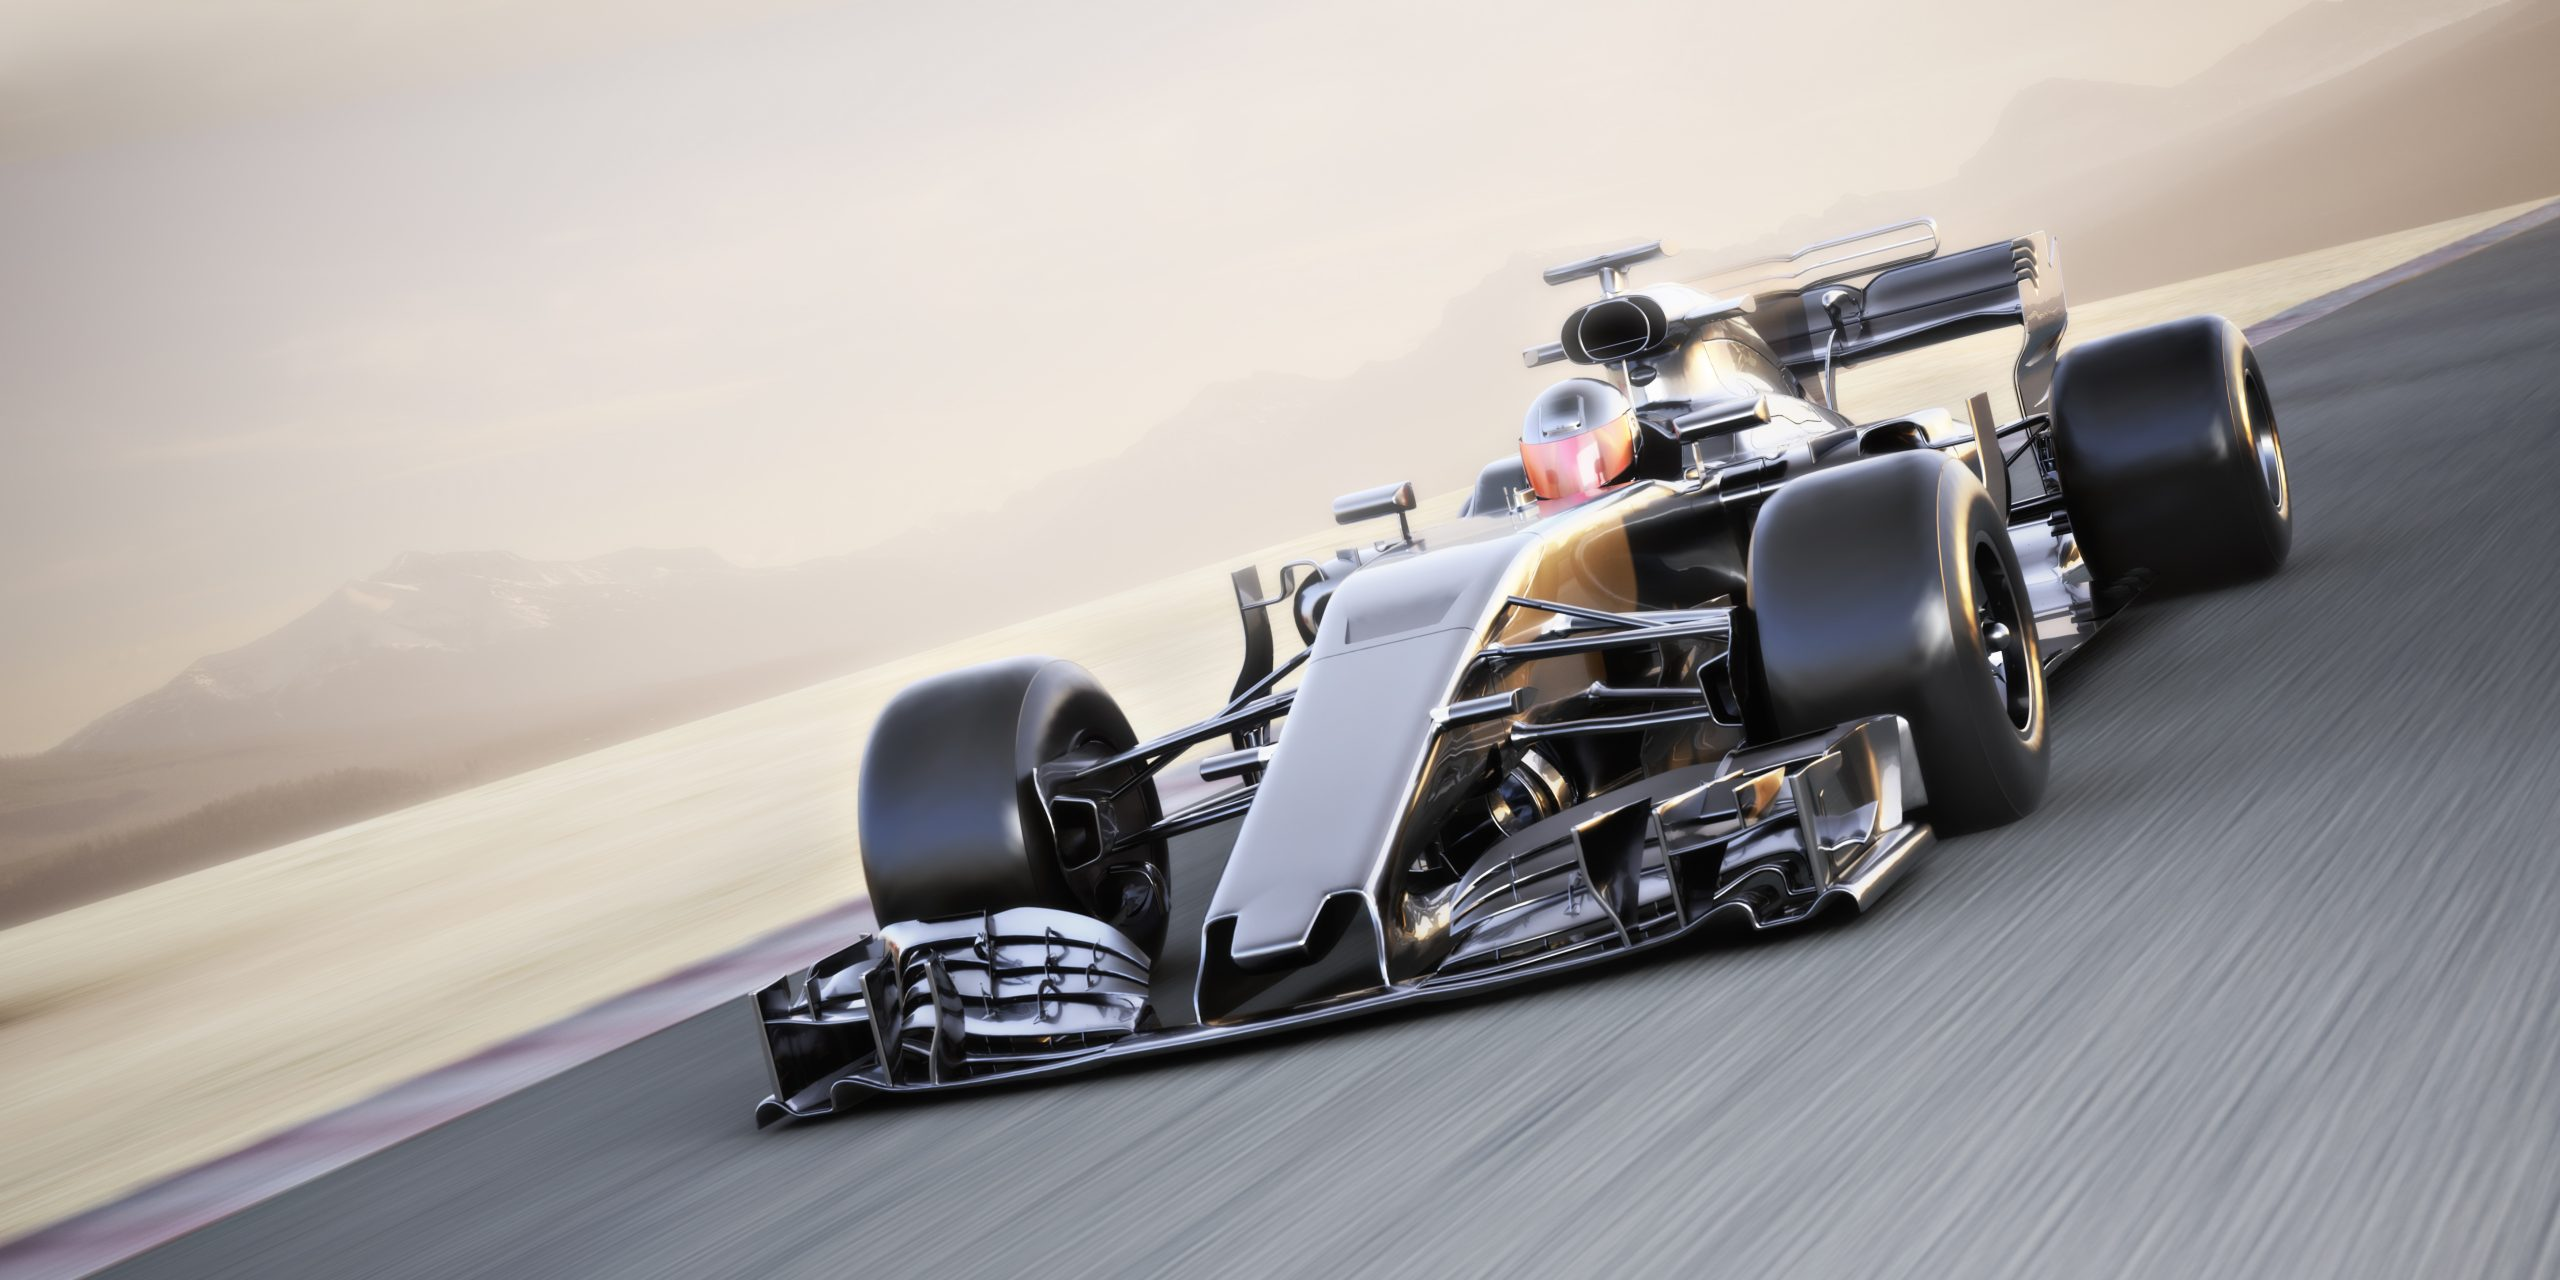 Qatar to Join F1 calender in 2021